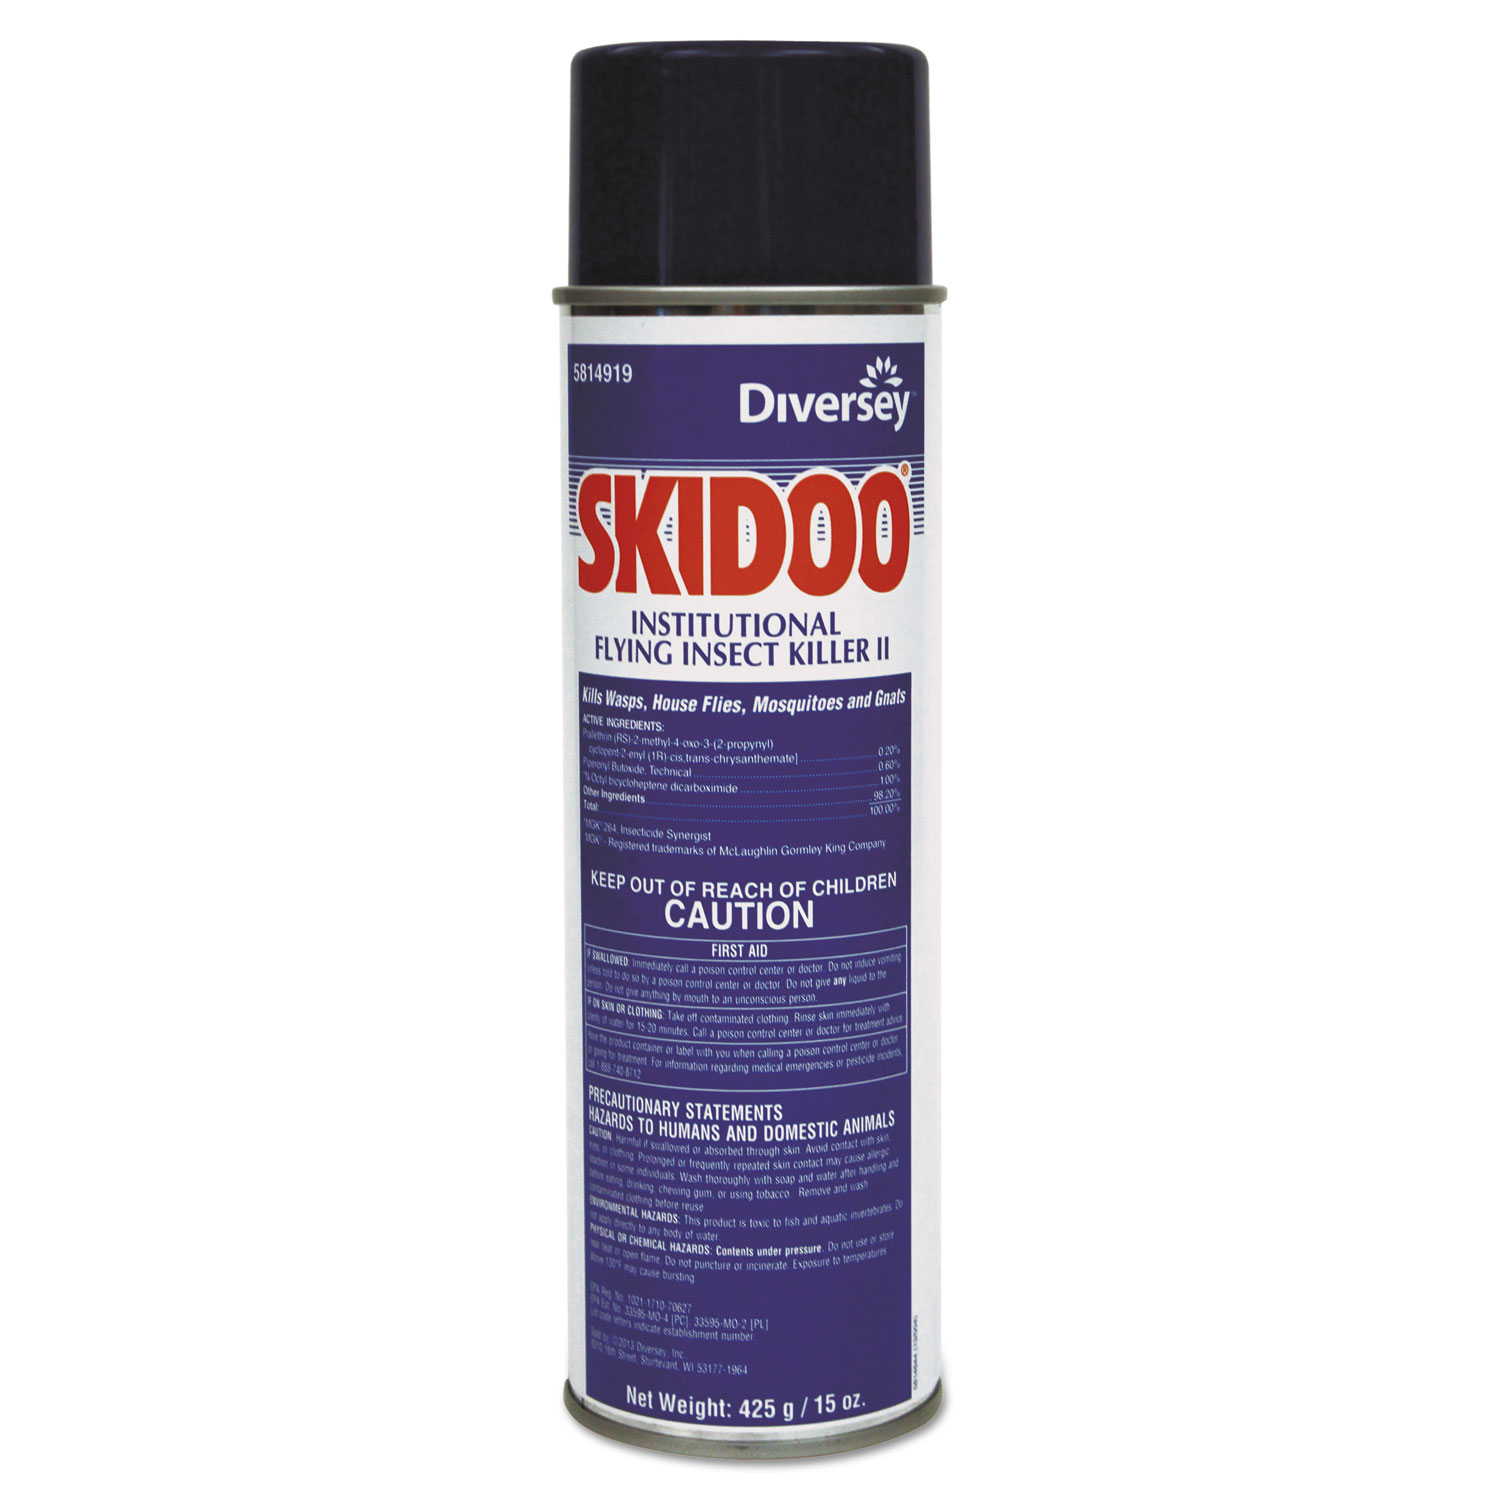 Skidoo Institutional Flying Insect Killer, 15 oz Aerosol, 6